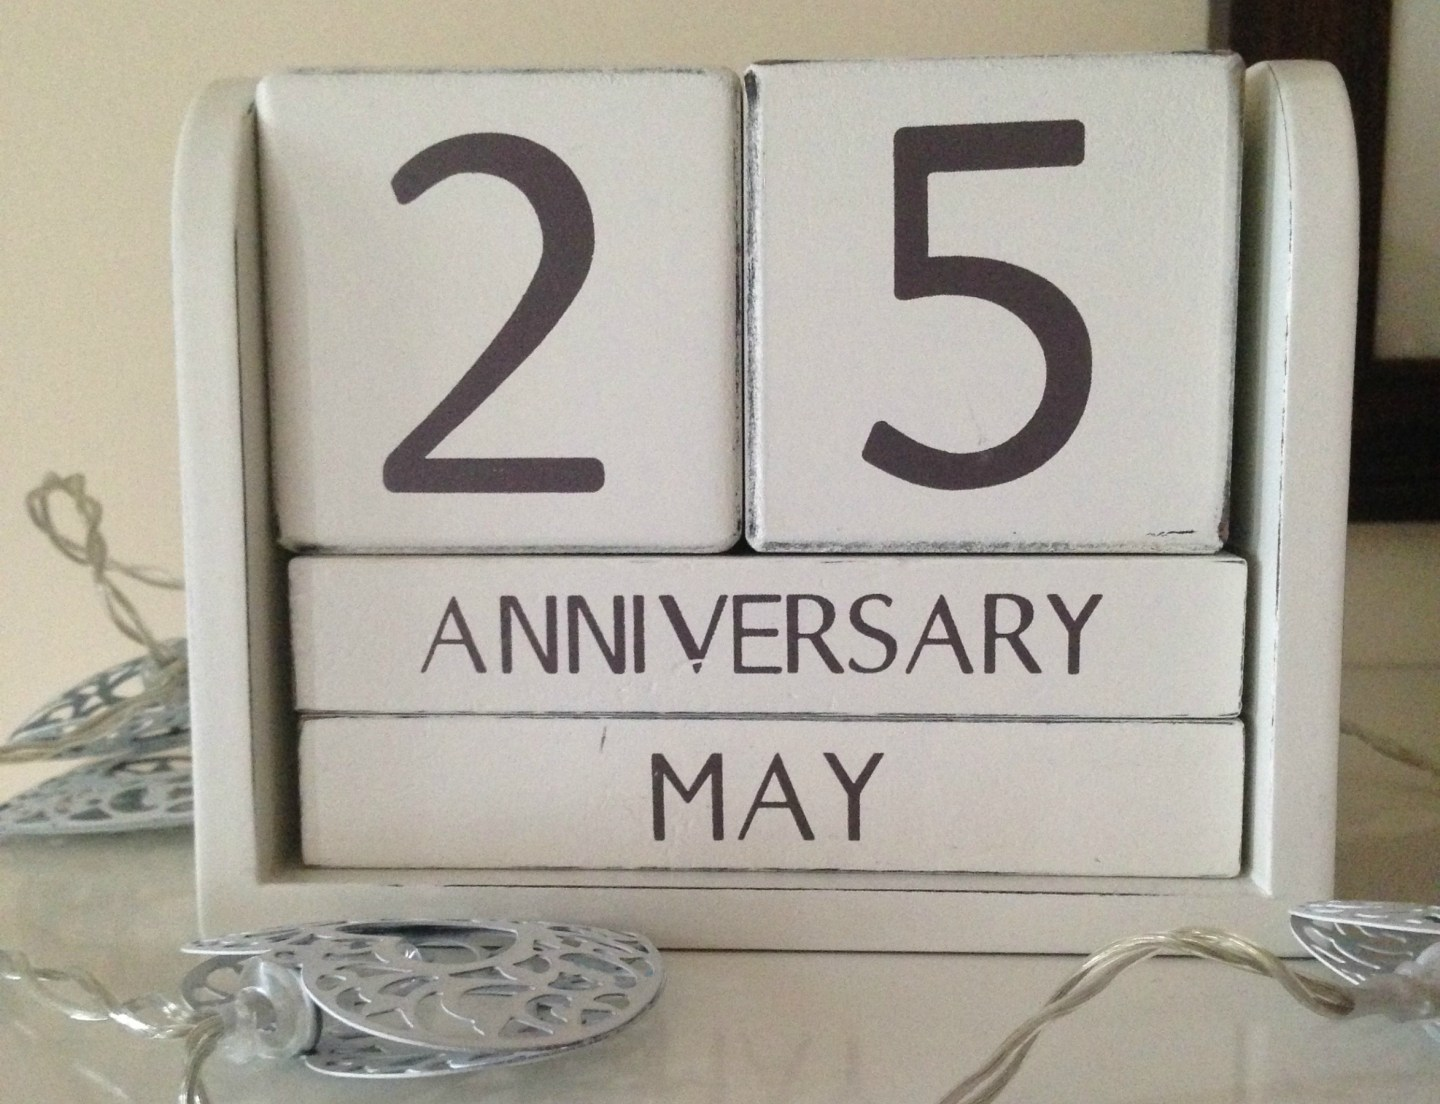 Counting blessings on a wedding anniversary